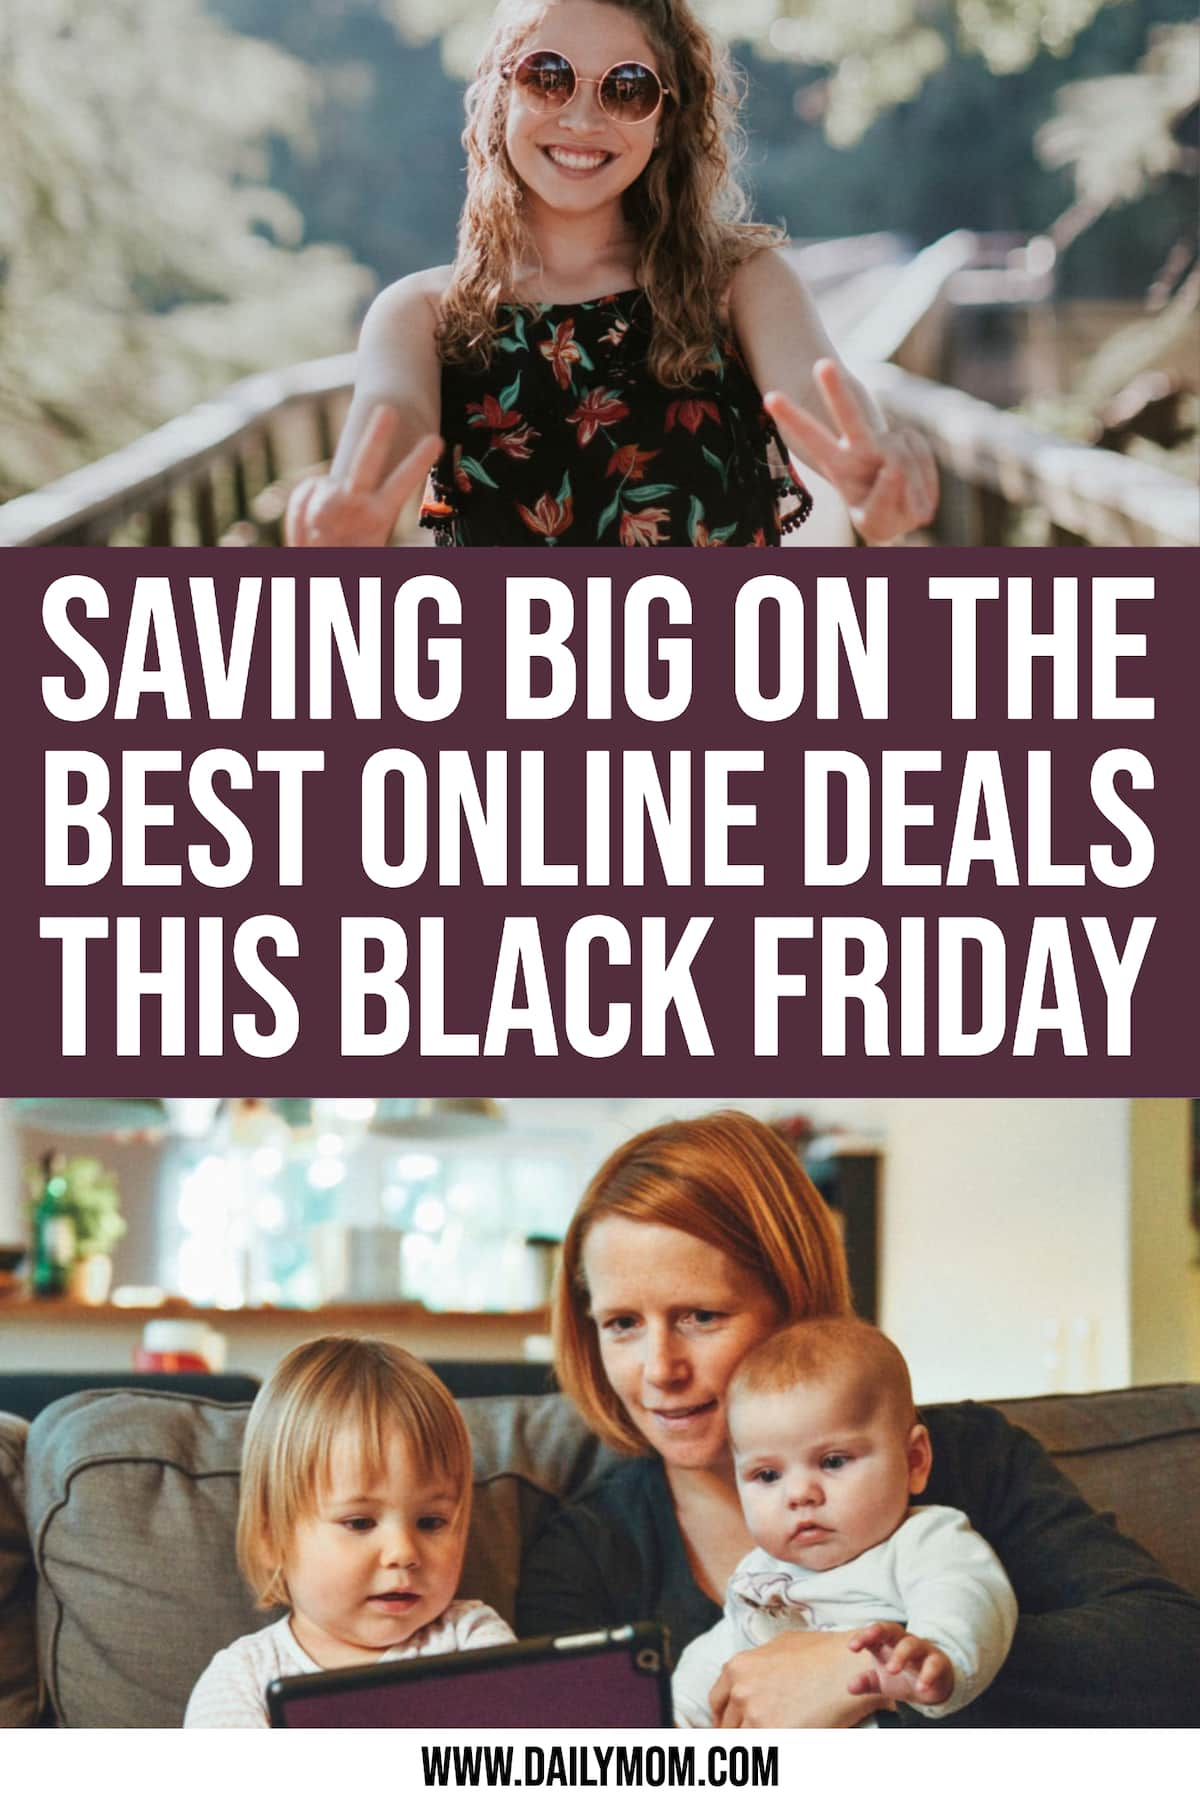 daily-mom-parent-portal-Shop For The Best Online Deals This Black Friday